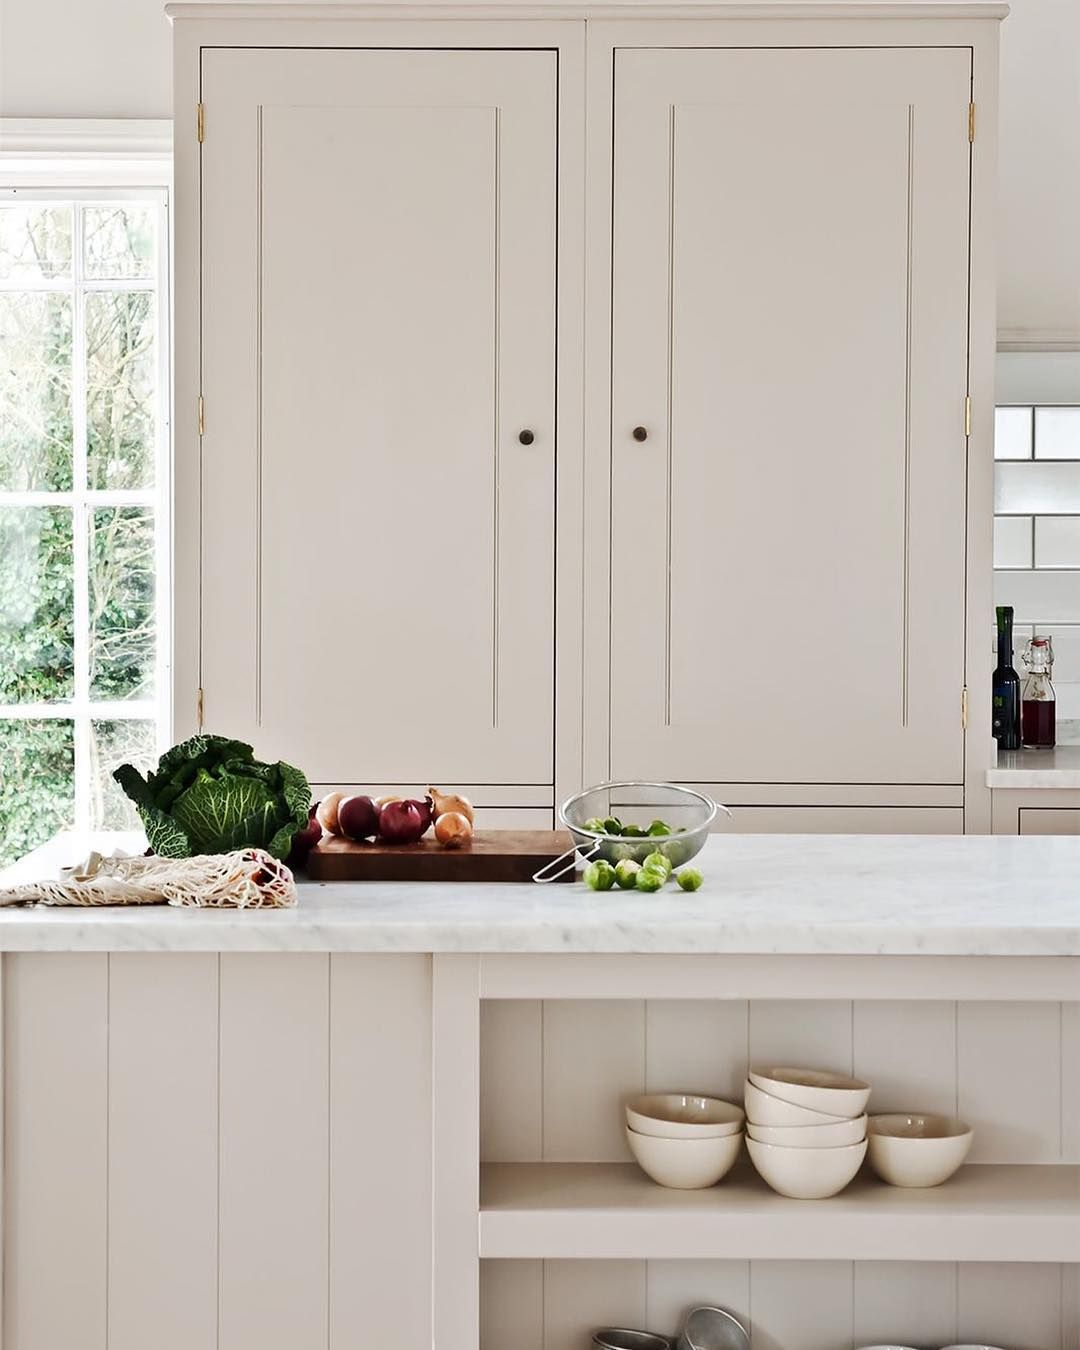 English Kitchen Garden: Pure White Simplicity For Easy Living